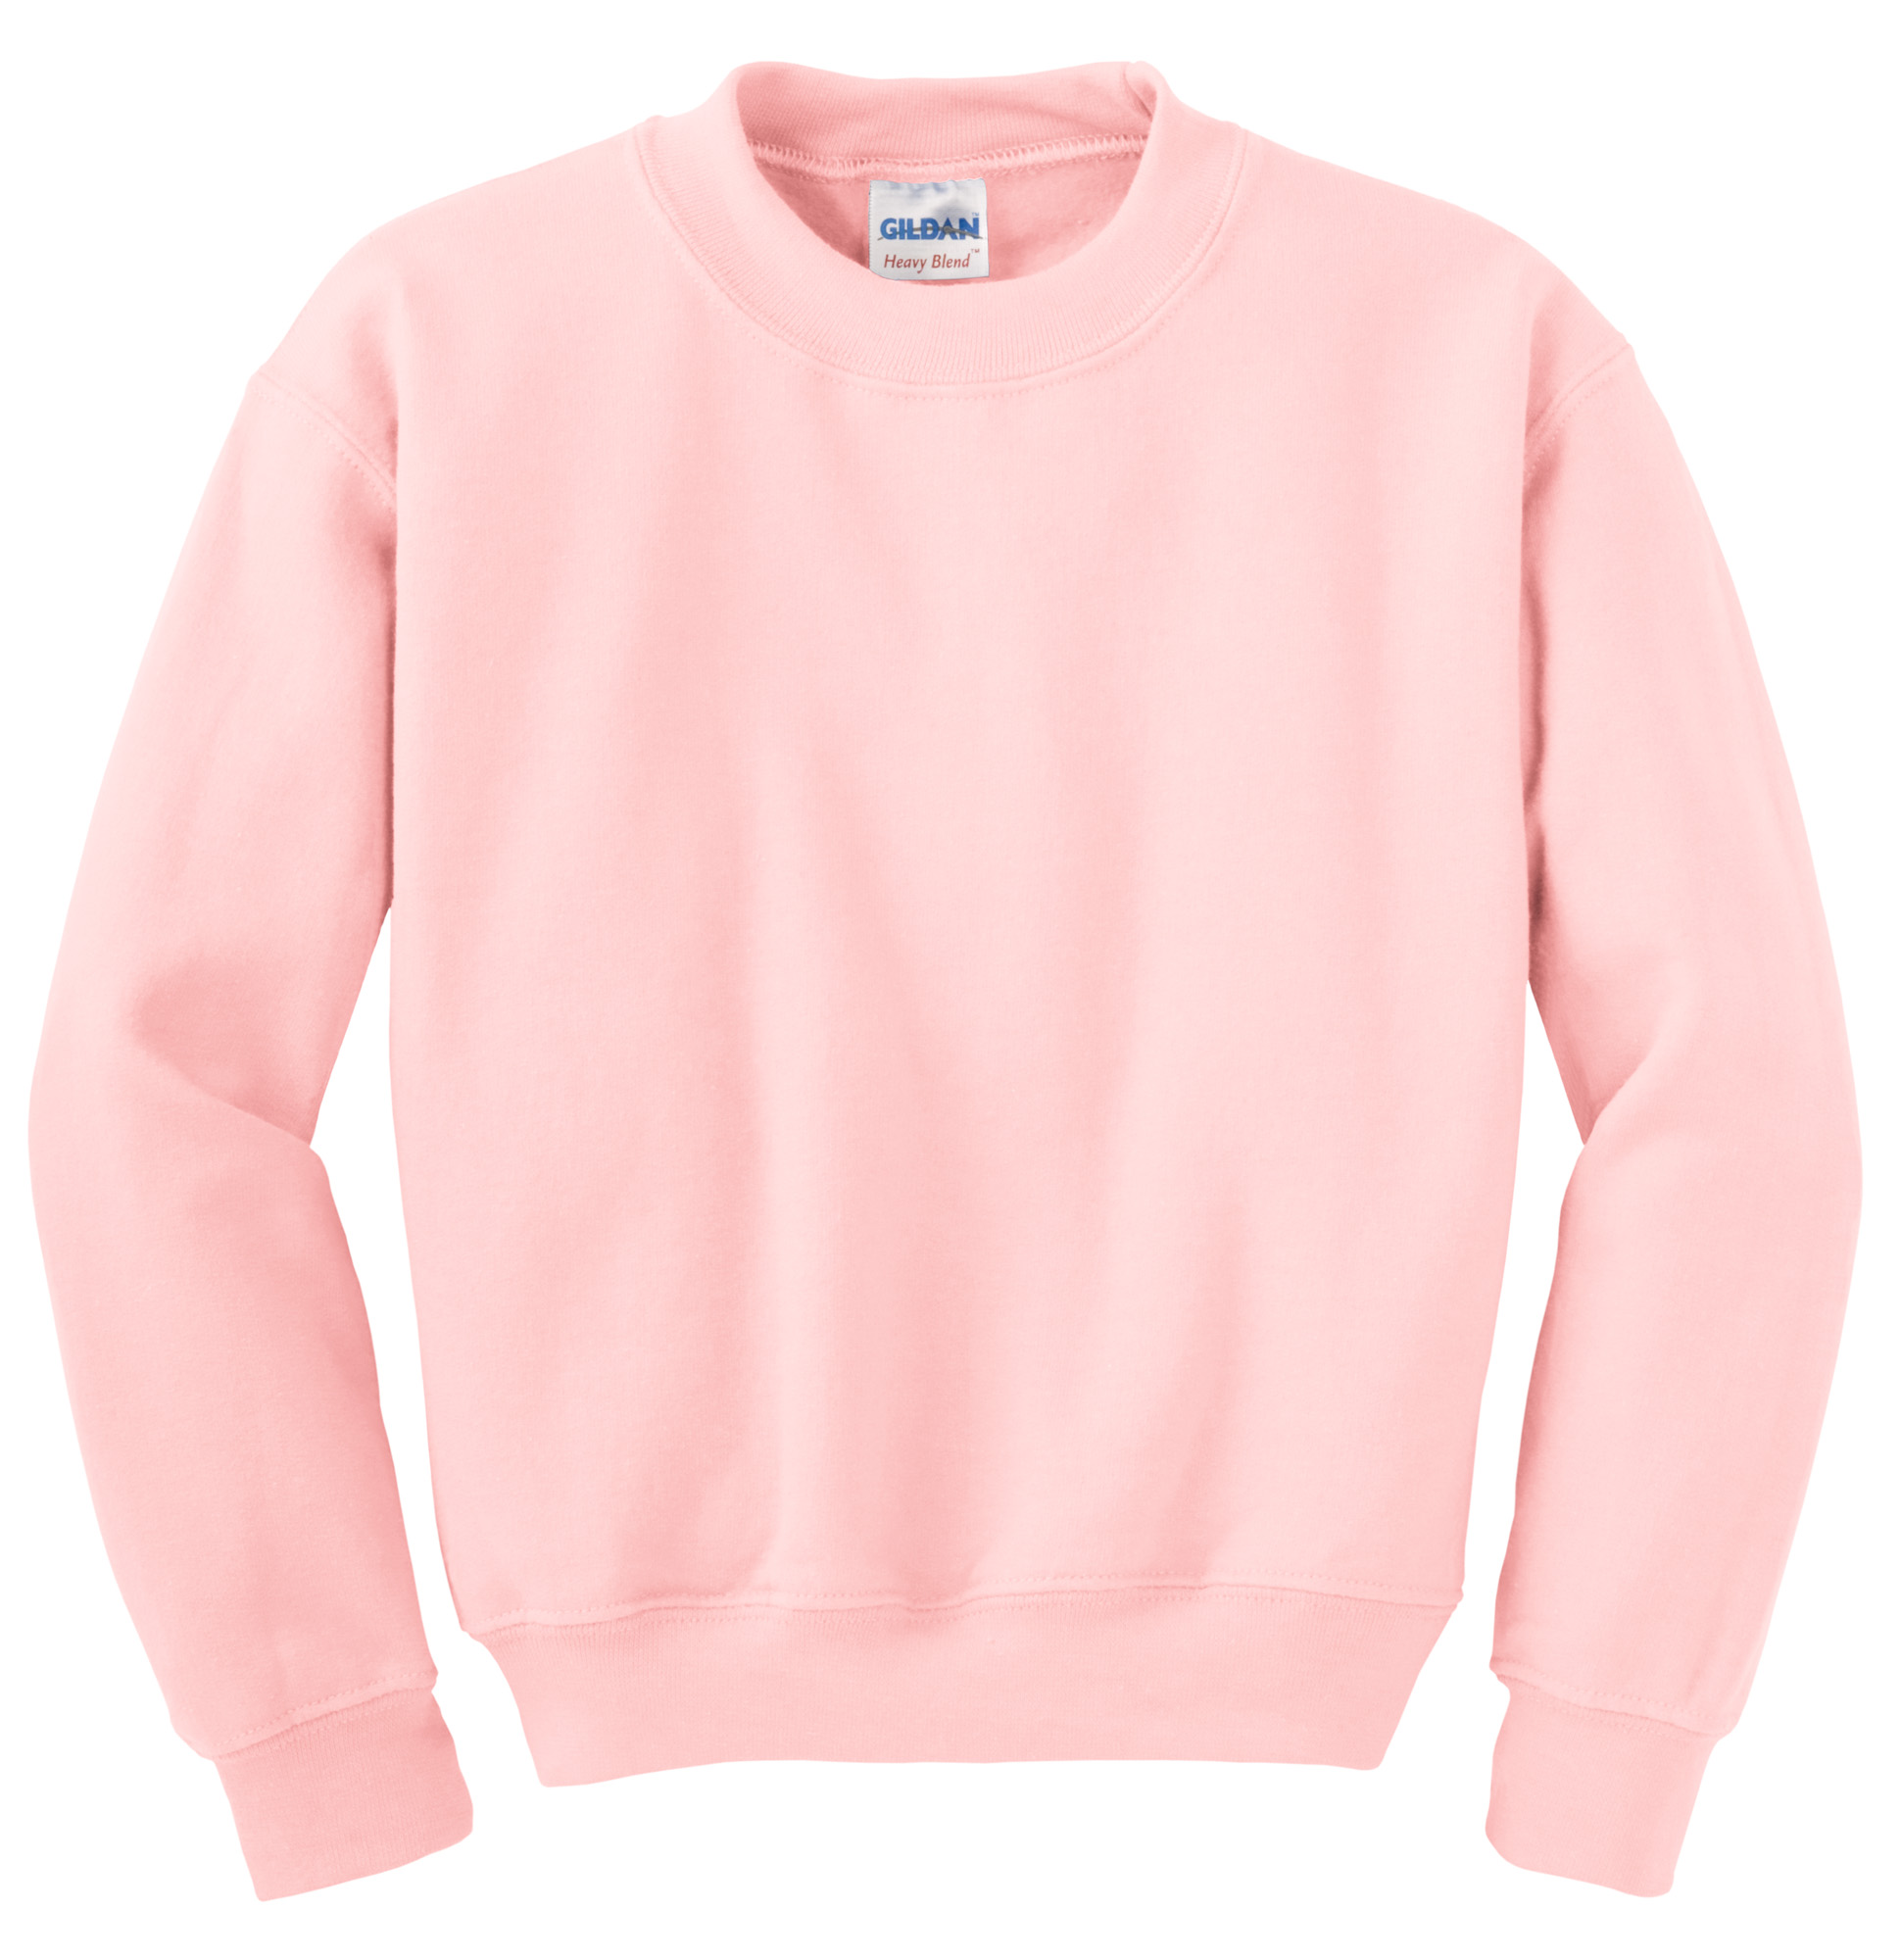 Gildan – Heavy Blend™ Crewneck Sweatshirt. 18000 | Supply Theory